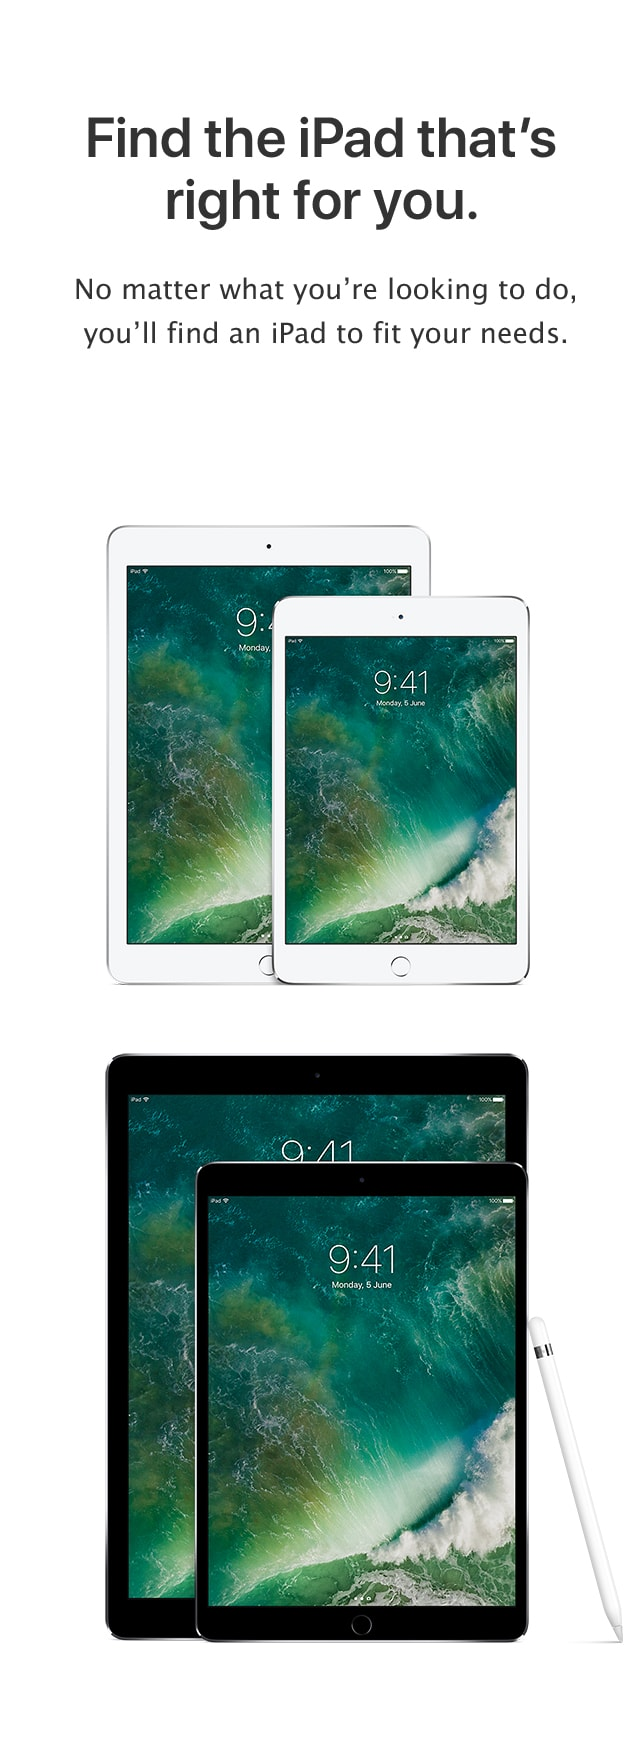 Compare iPads: Find the iPad that's right for you